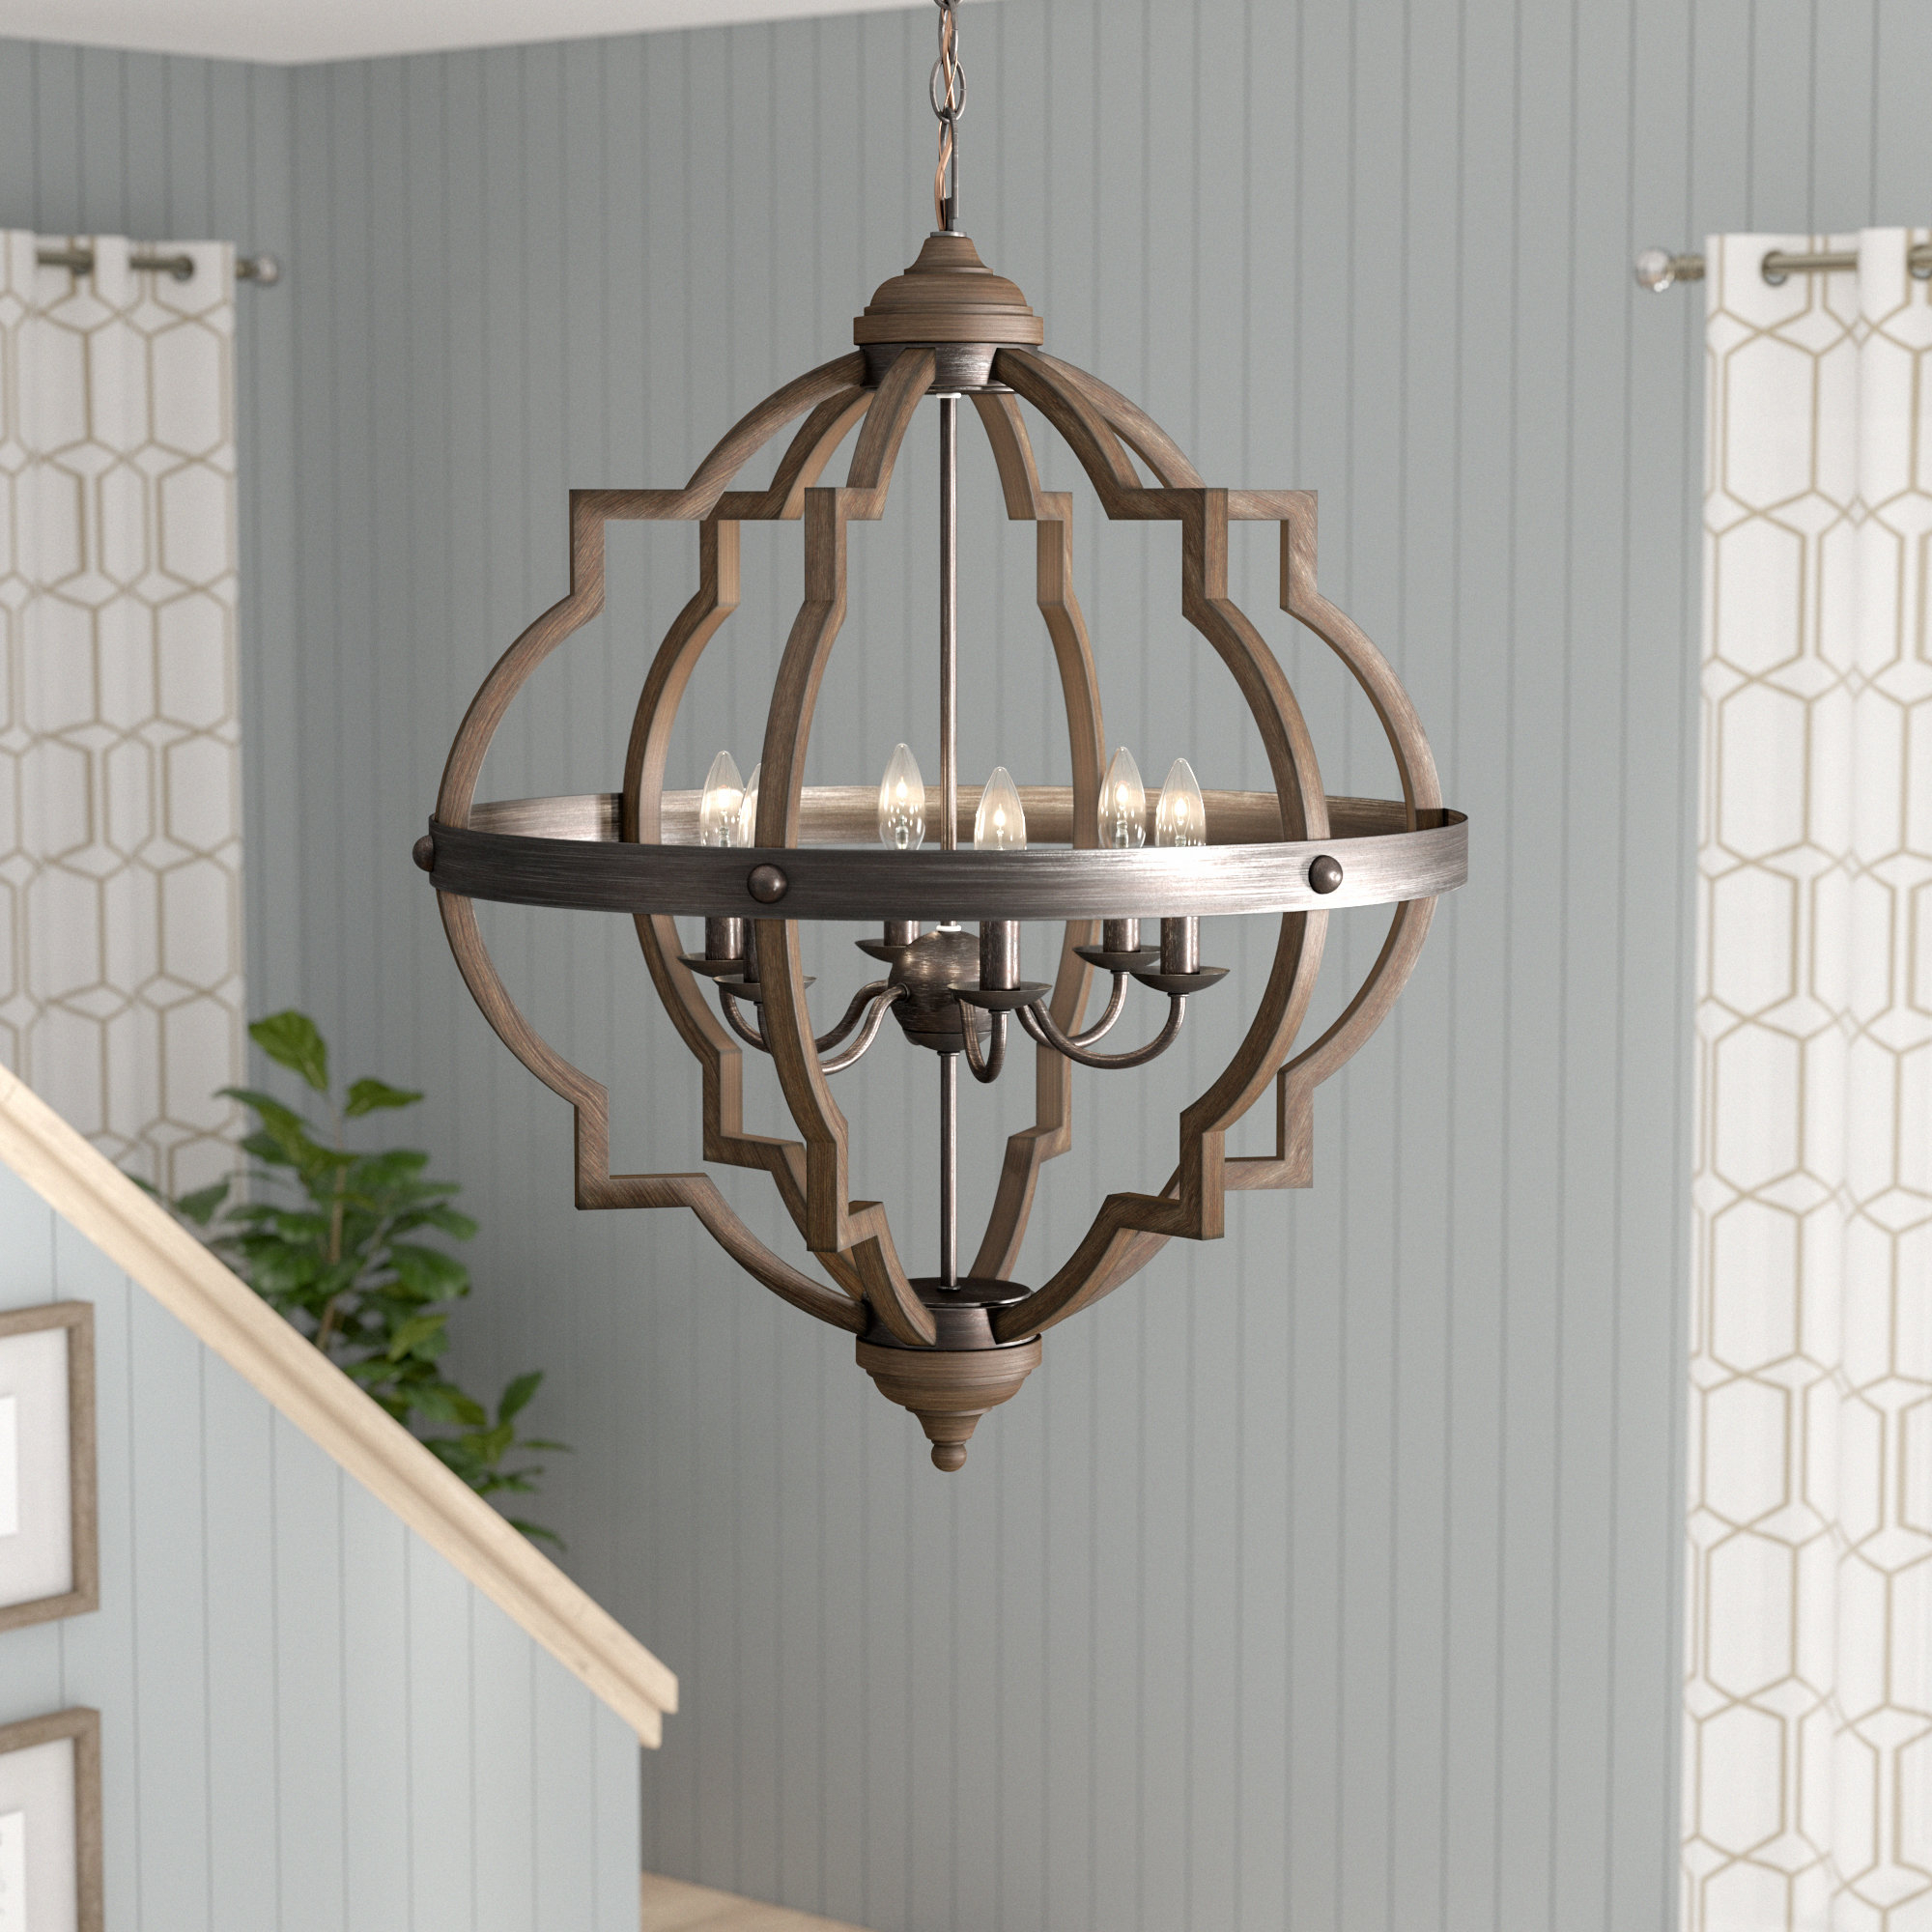 2020 Kaycee 4-Light Geometric Chandeliers intended for Bennington 6-Light Candle Style Chandelier